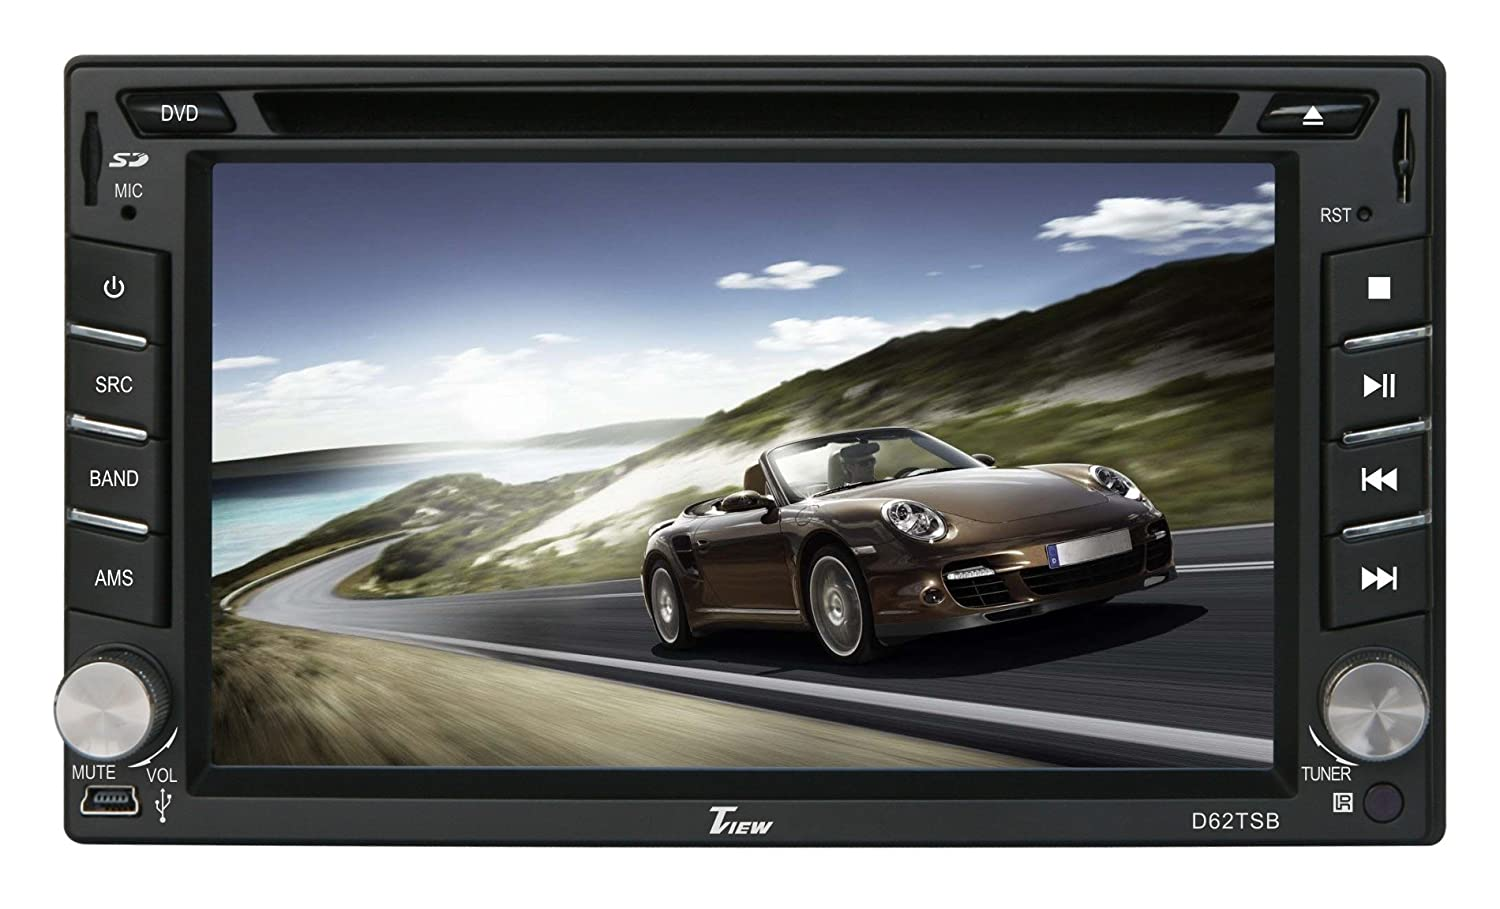 71N8 eVkMJL._SL1500_ amazon com tview d62tsb 6 2 inch double din touch screen with  at panicattacktreatment.co